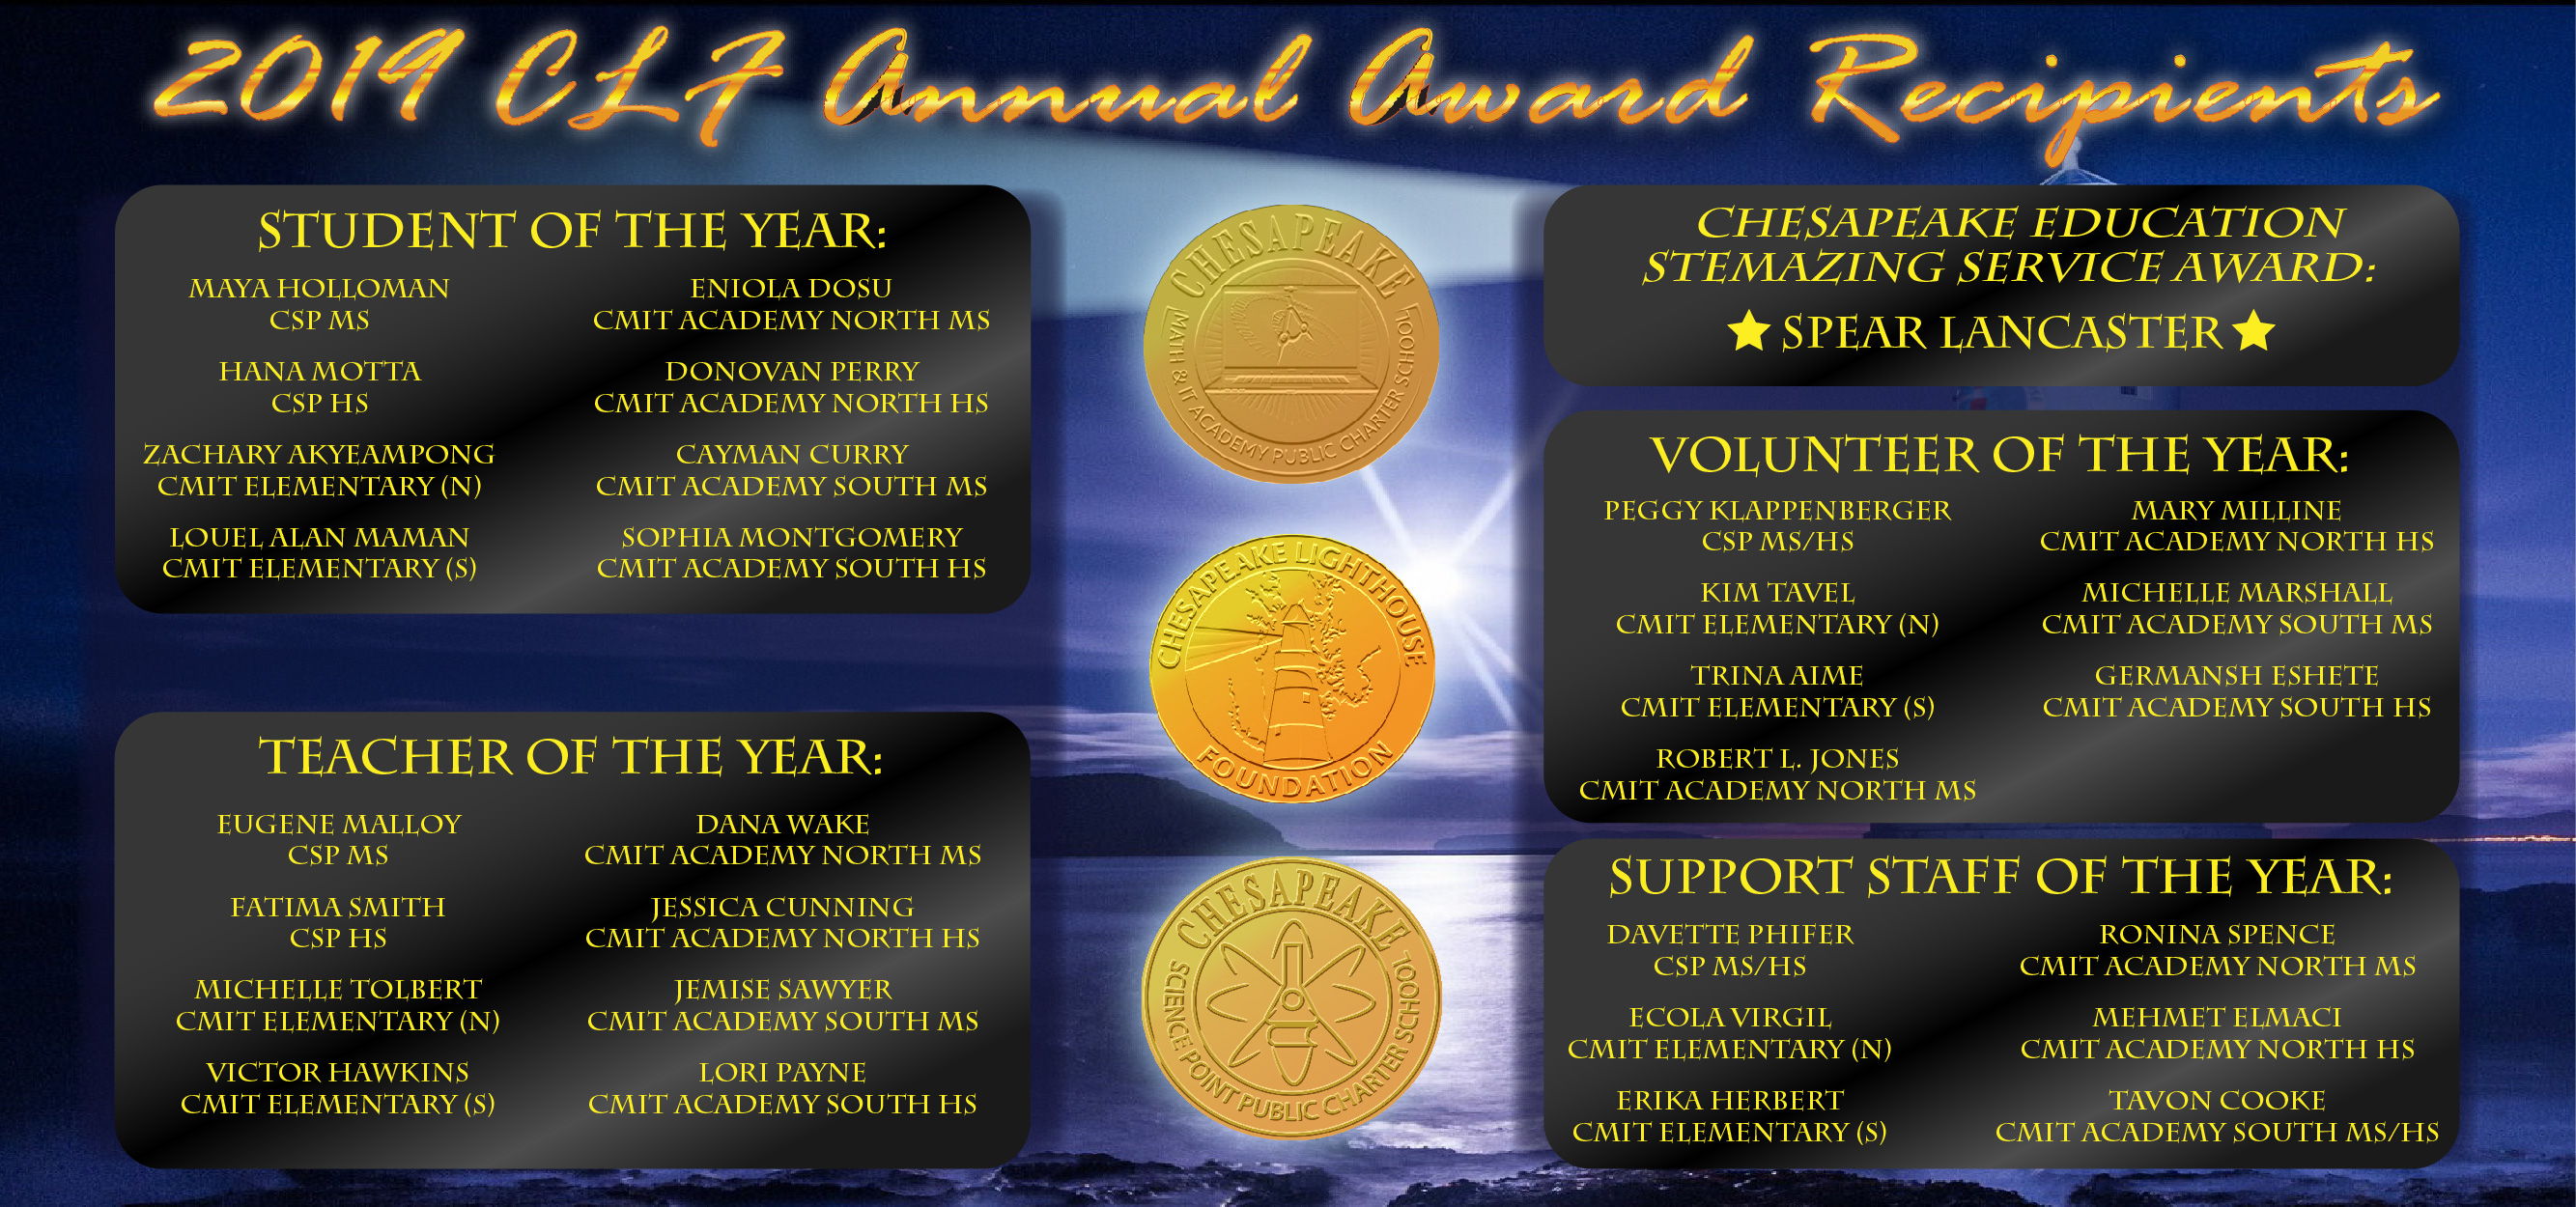 Congratulations CLF Schools' 2019 Annual Awards Winners